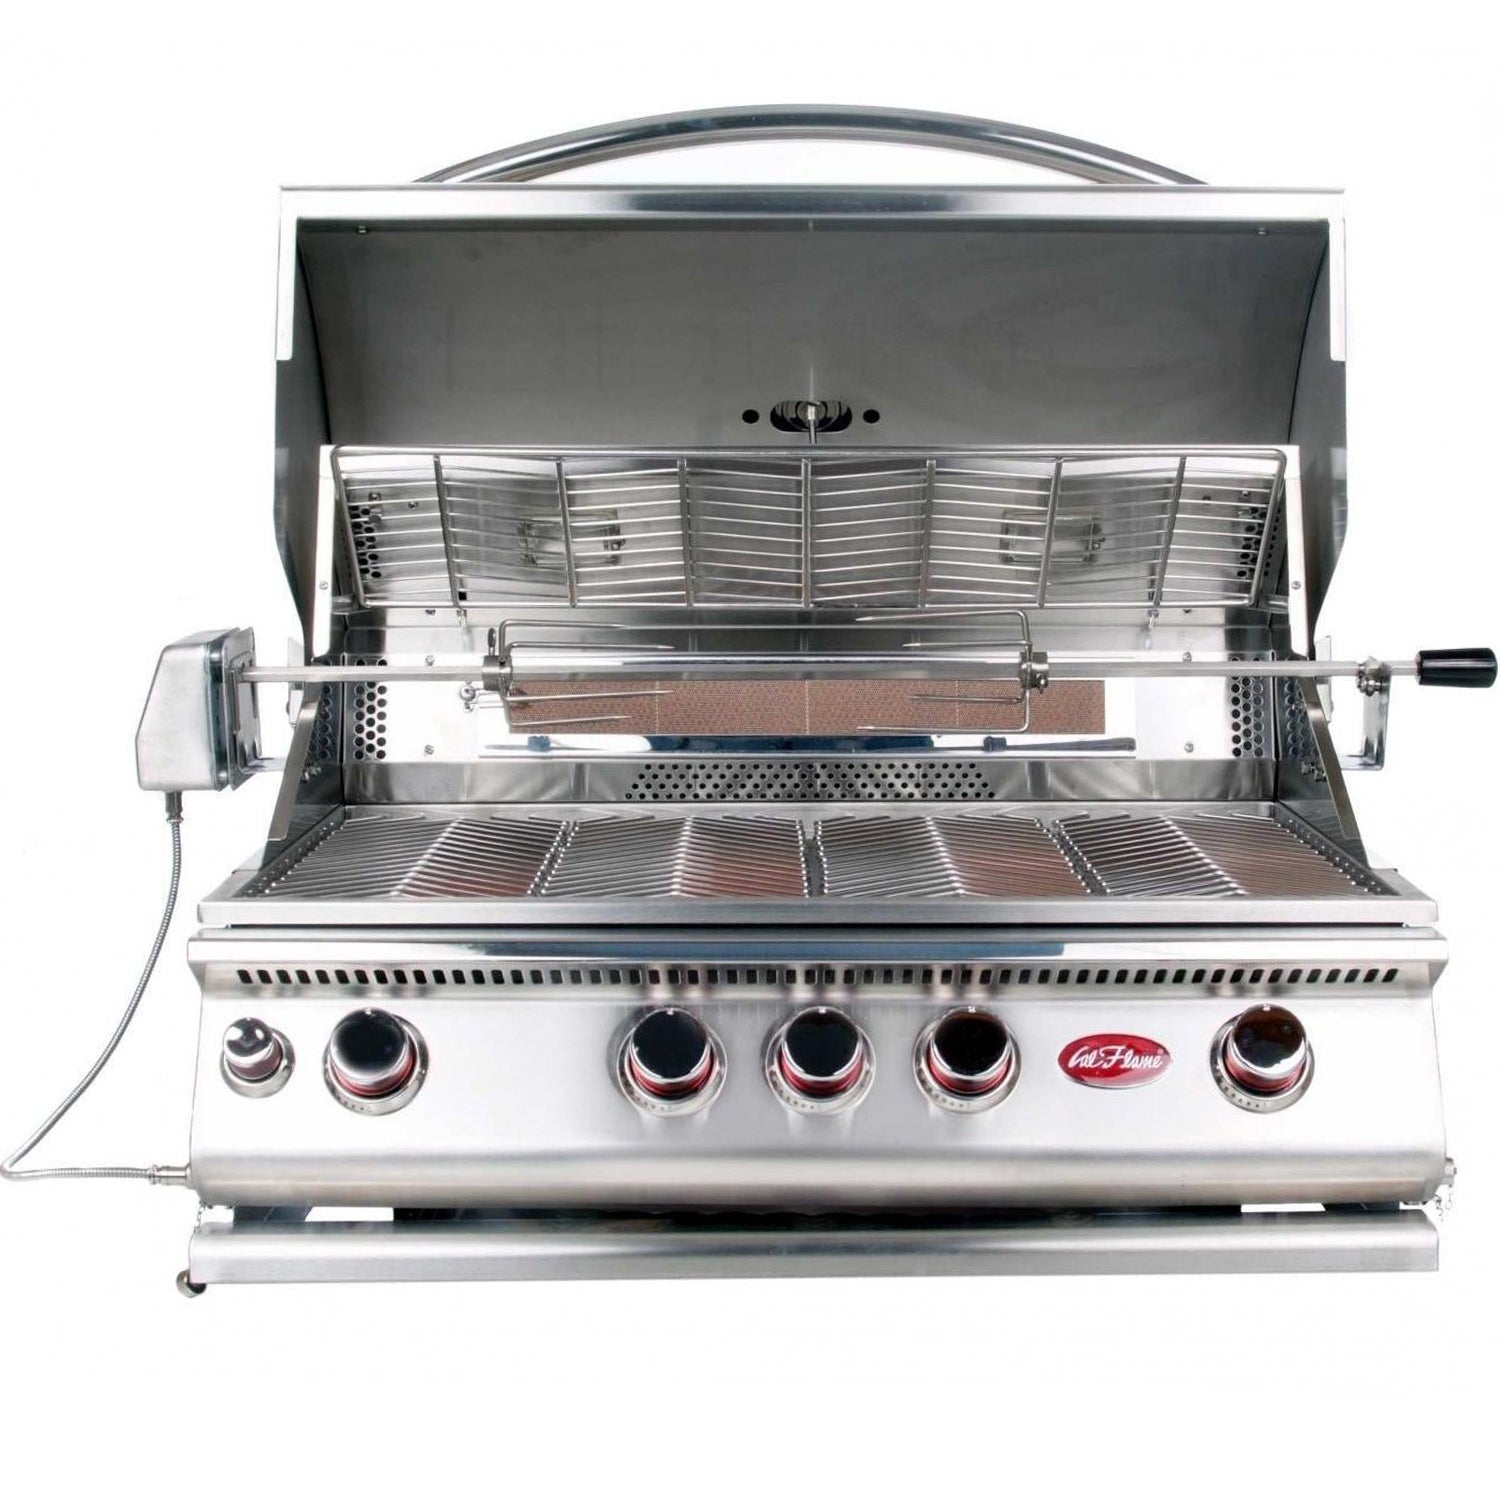 Cal Flame Built In 4 Burner Convection Grill Propane W/ N...